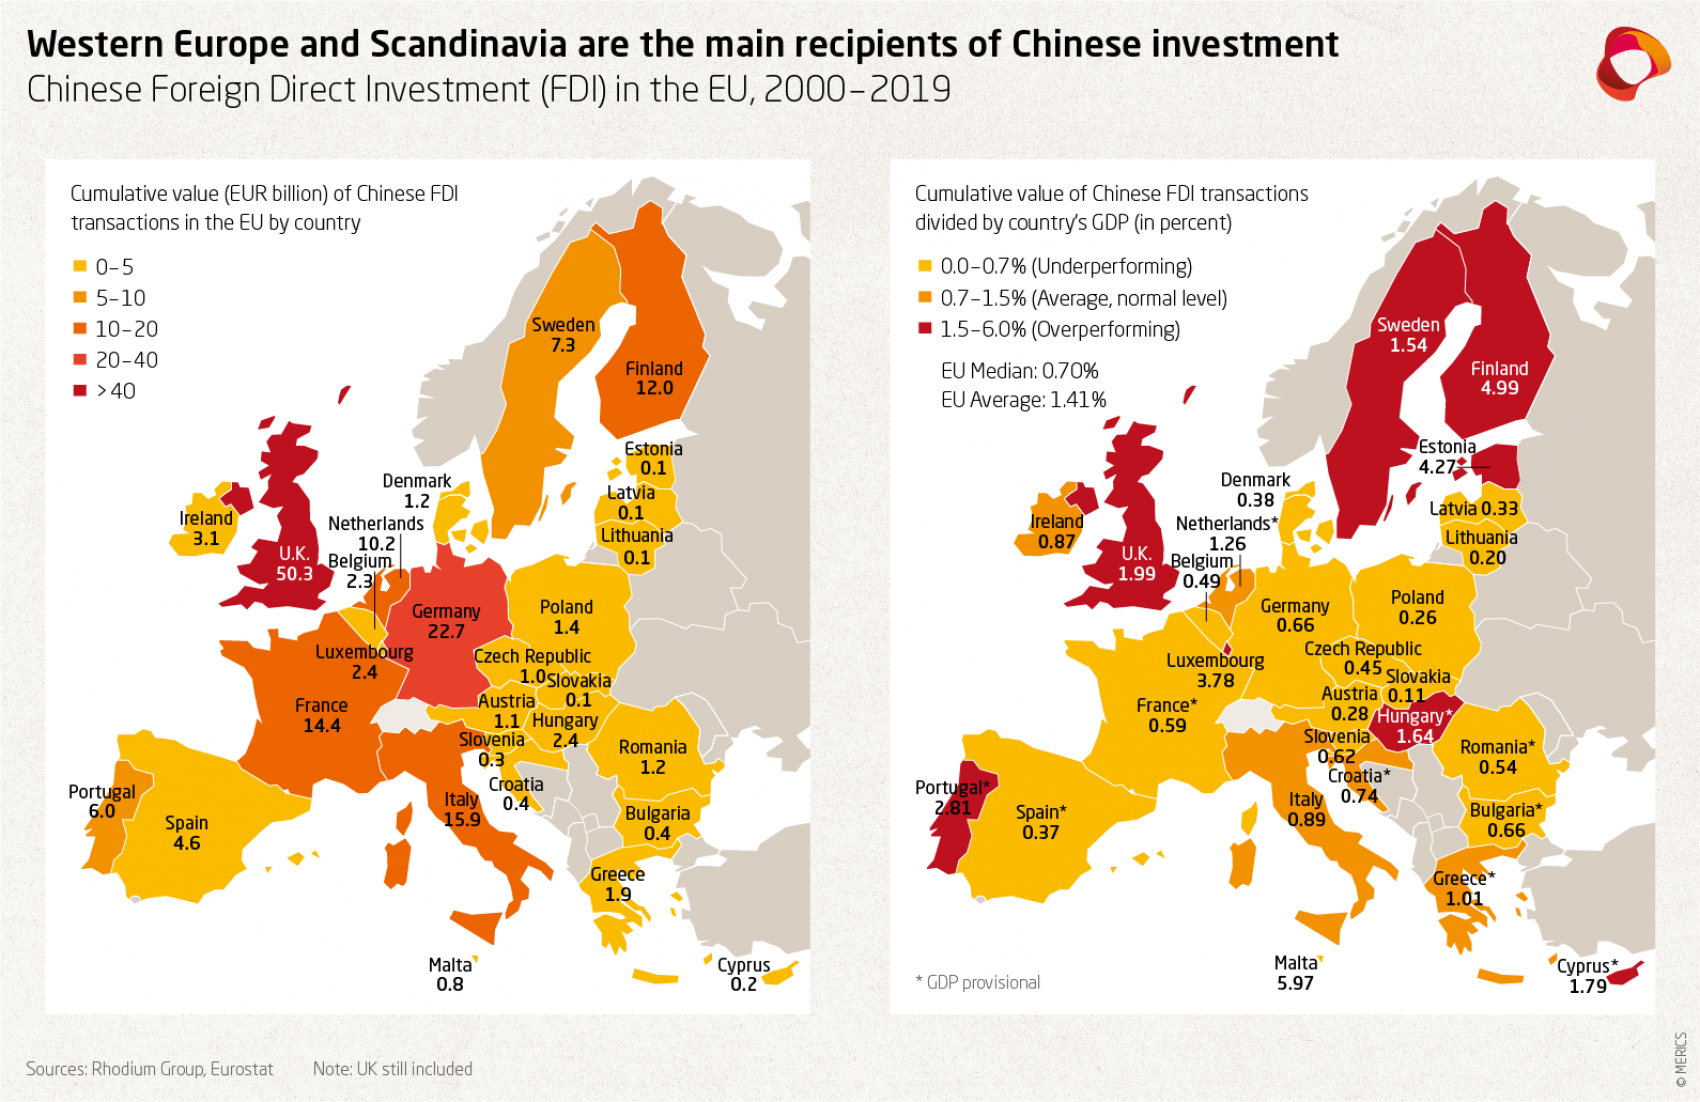 Map showing Chinese Foreign Direct Investment (FDI) in the EU between 2000 and 2019